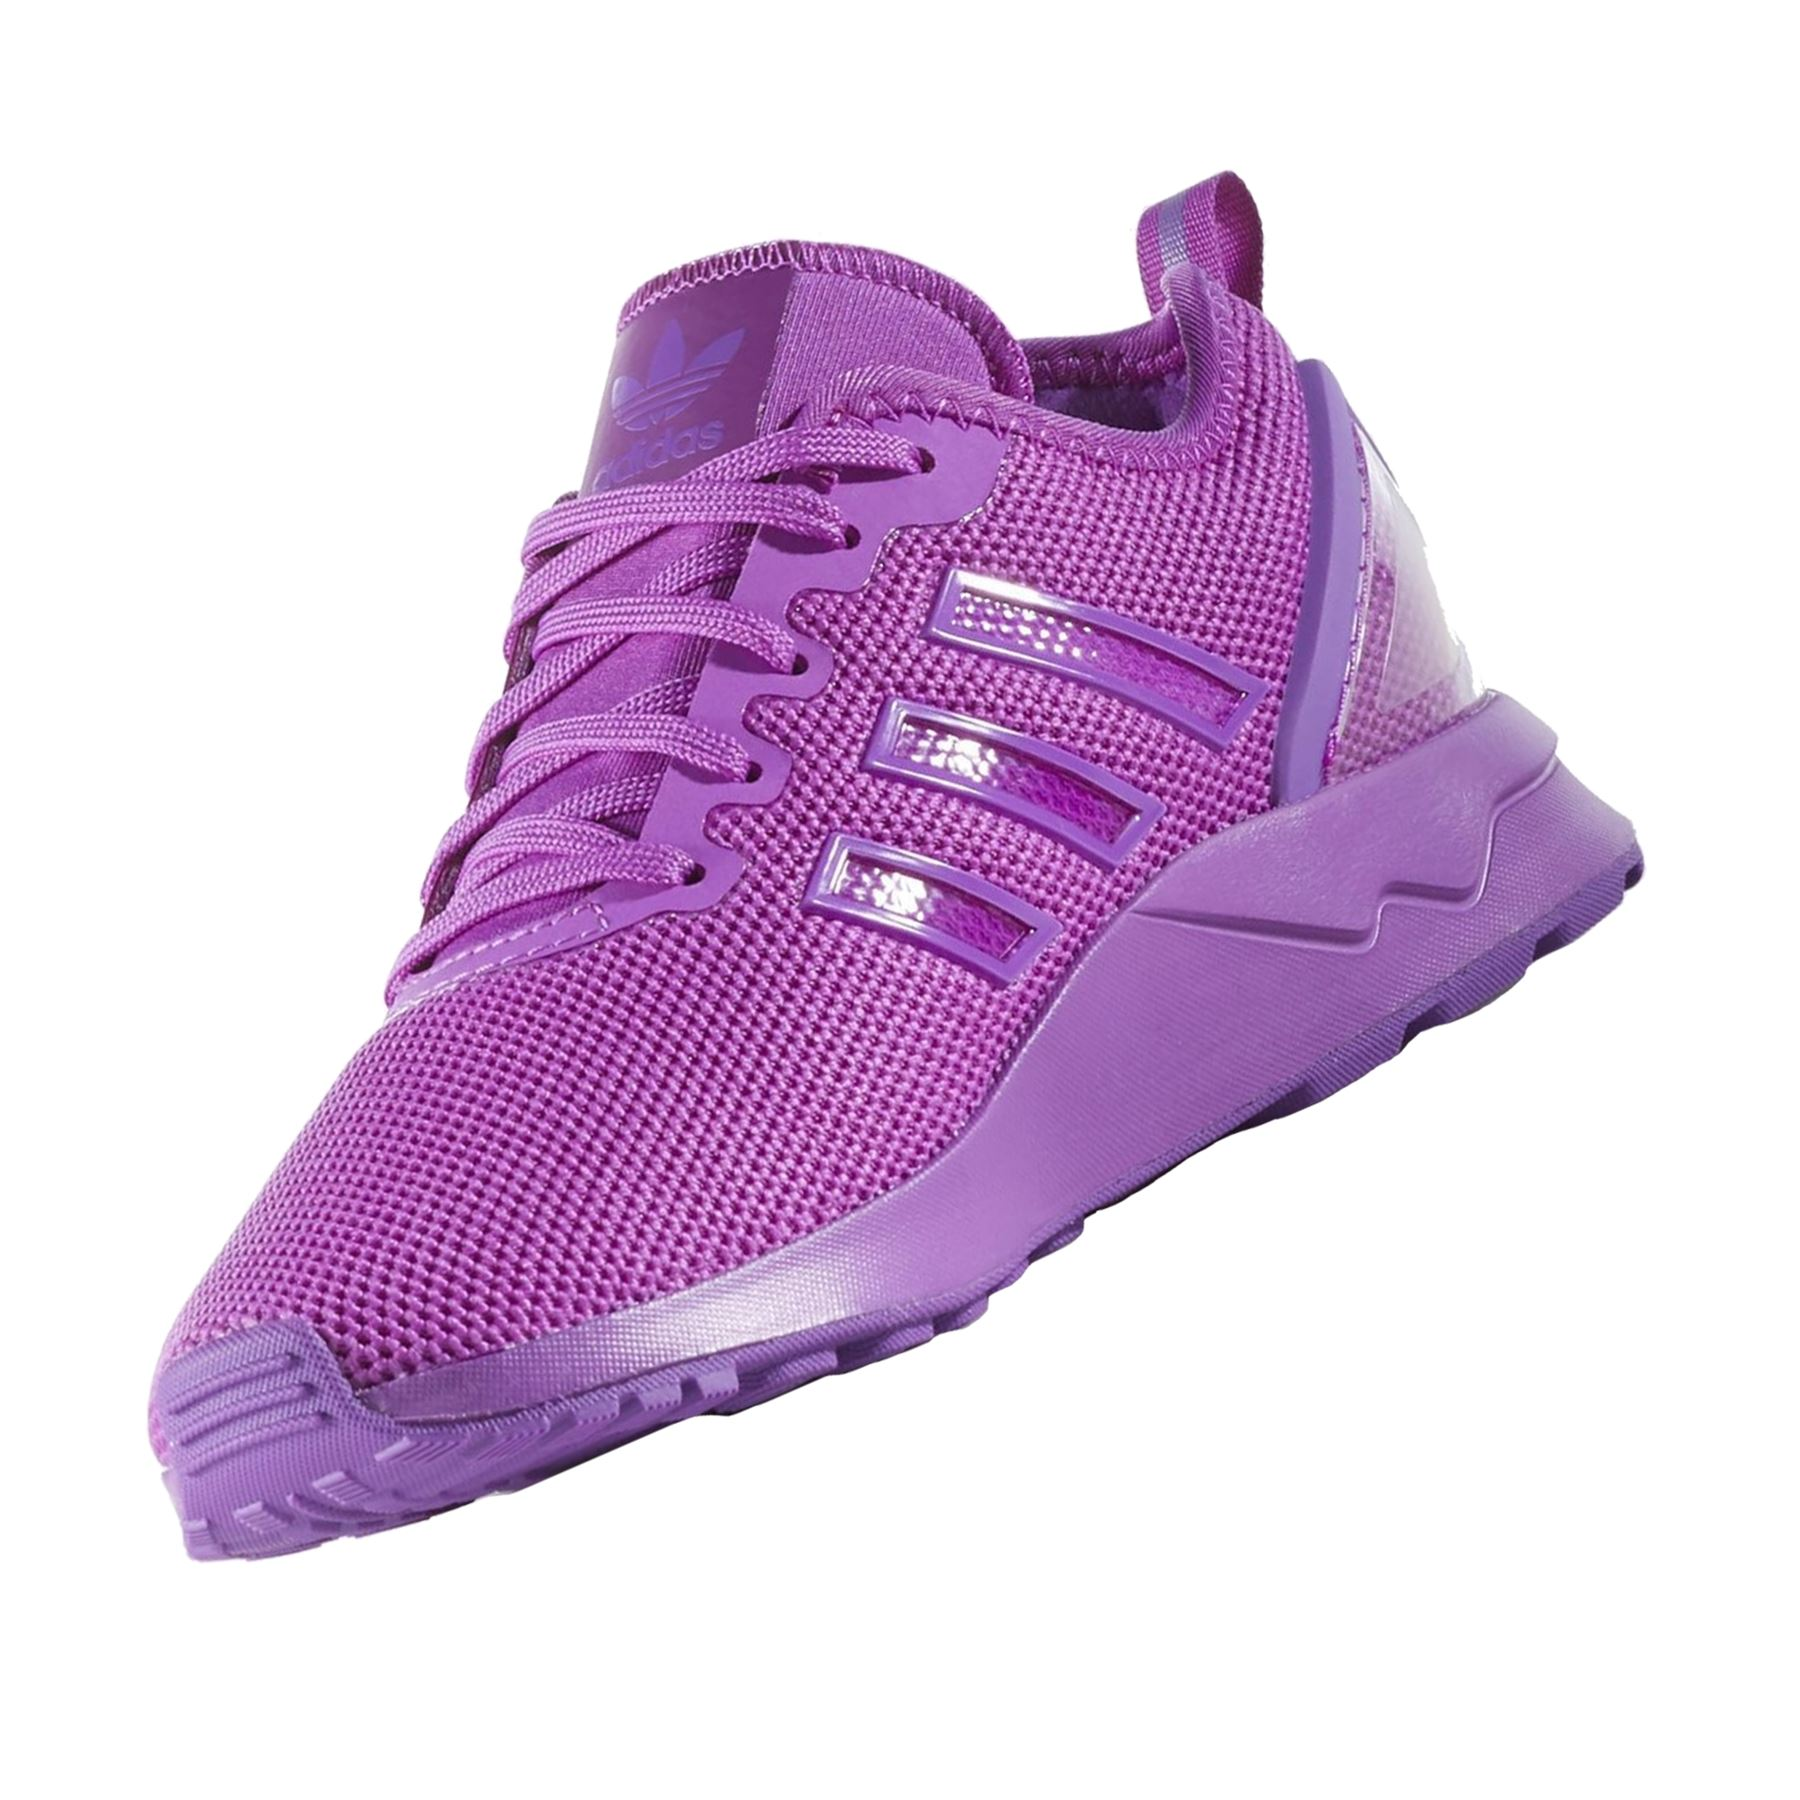 Details about adidas ORIGINALS JUNIOR ZX FLUX ADV TRAINERS PURPLE 5.5 WOMEN'S